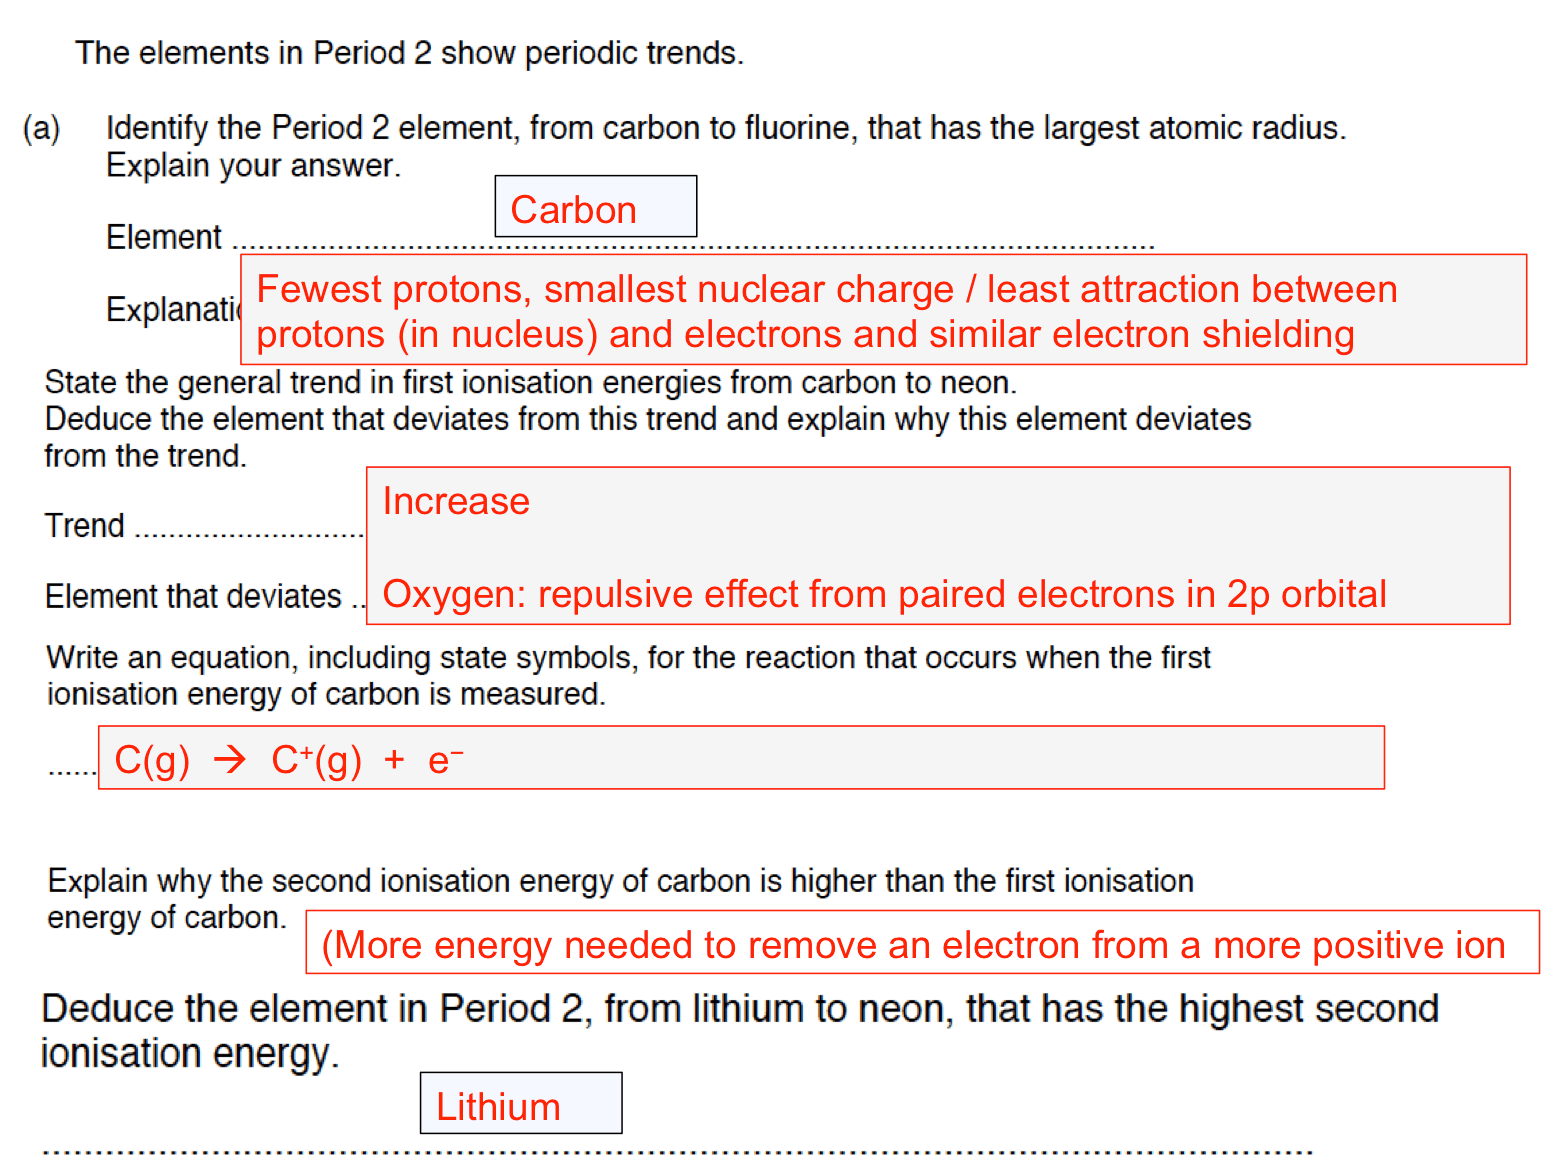 What Is The Equation For Second Ionization Energy Of